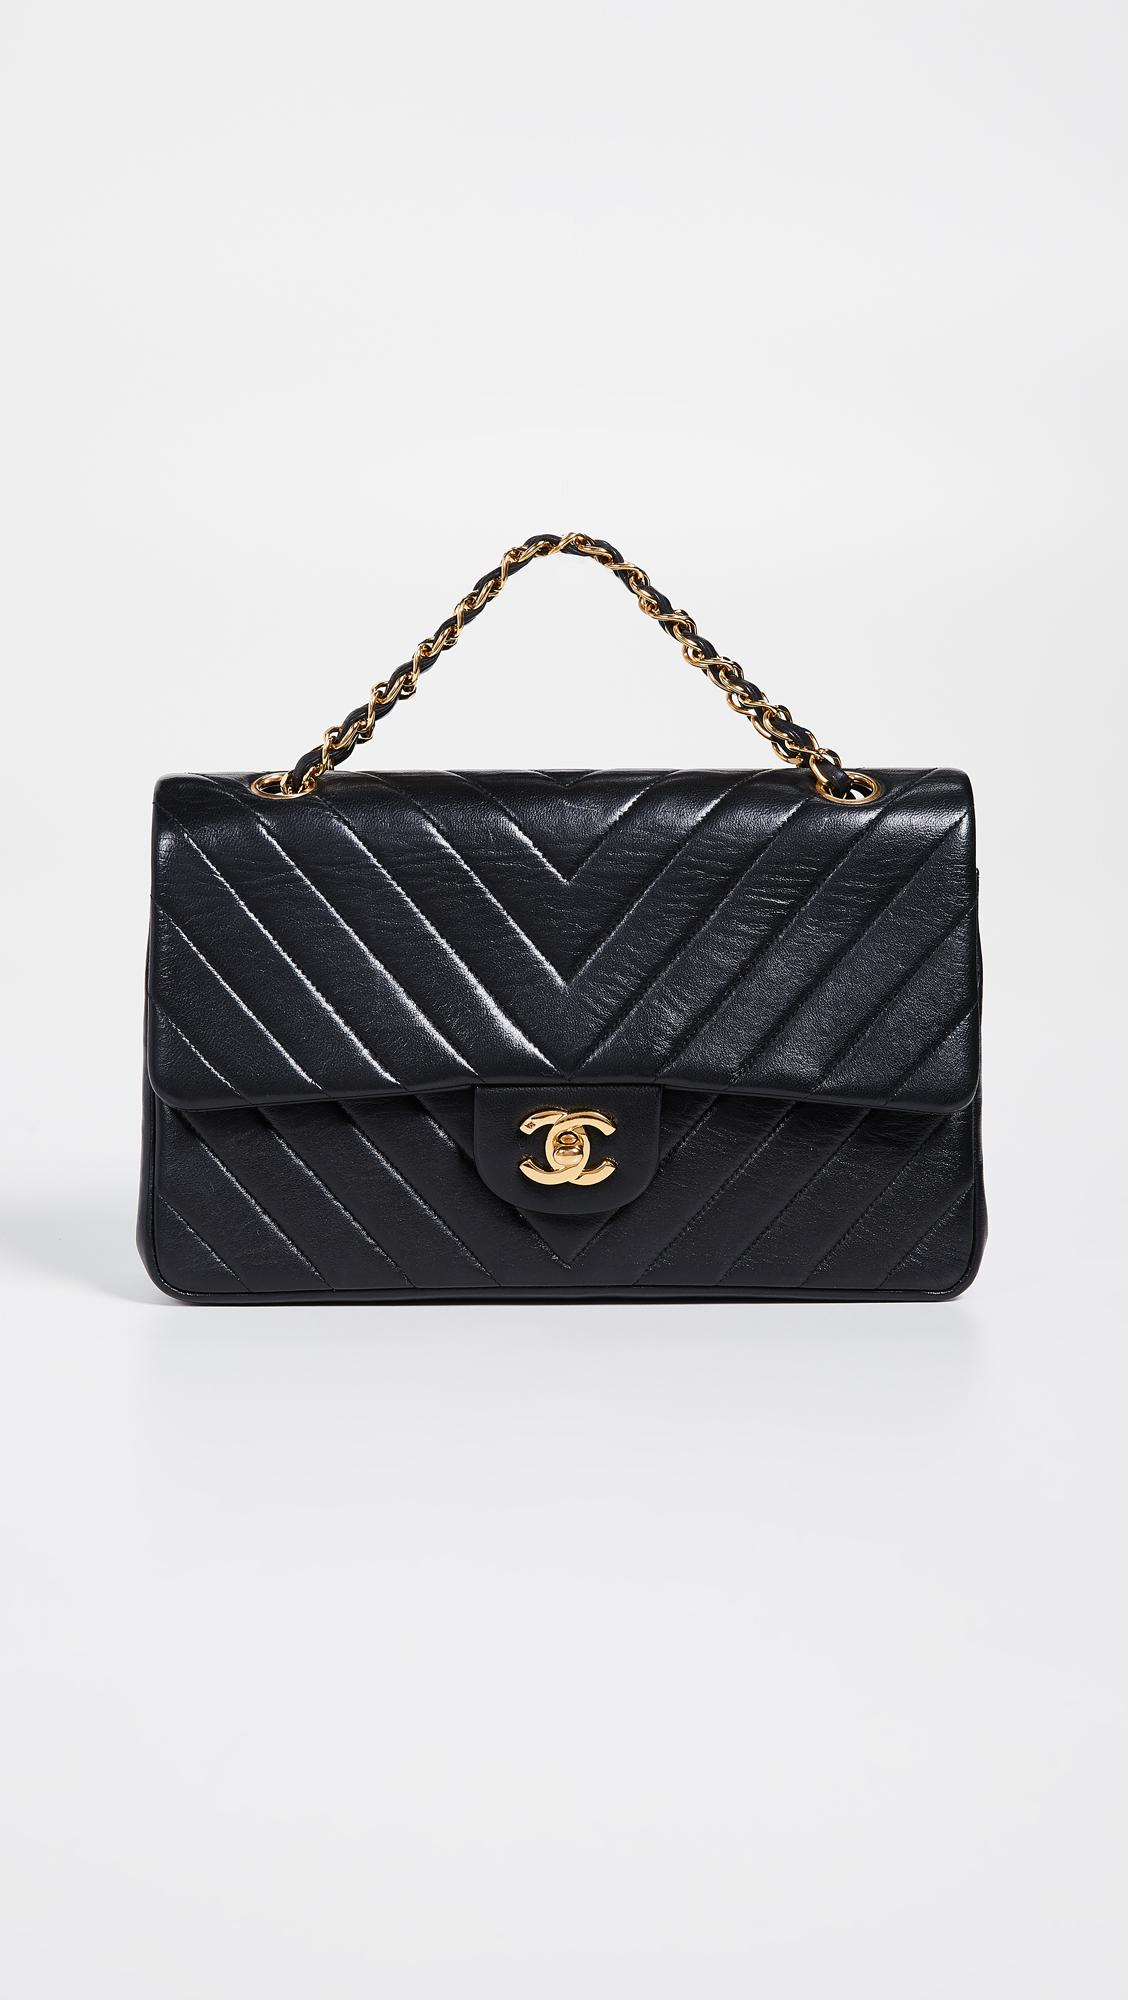 7f2611c9e97 What Goes Around Comes Around Chanel Chevron Flap Bag in Black - Lyst